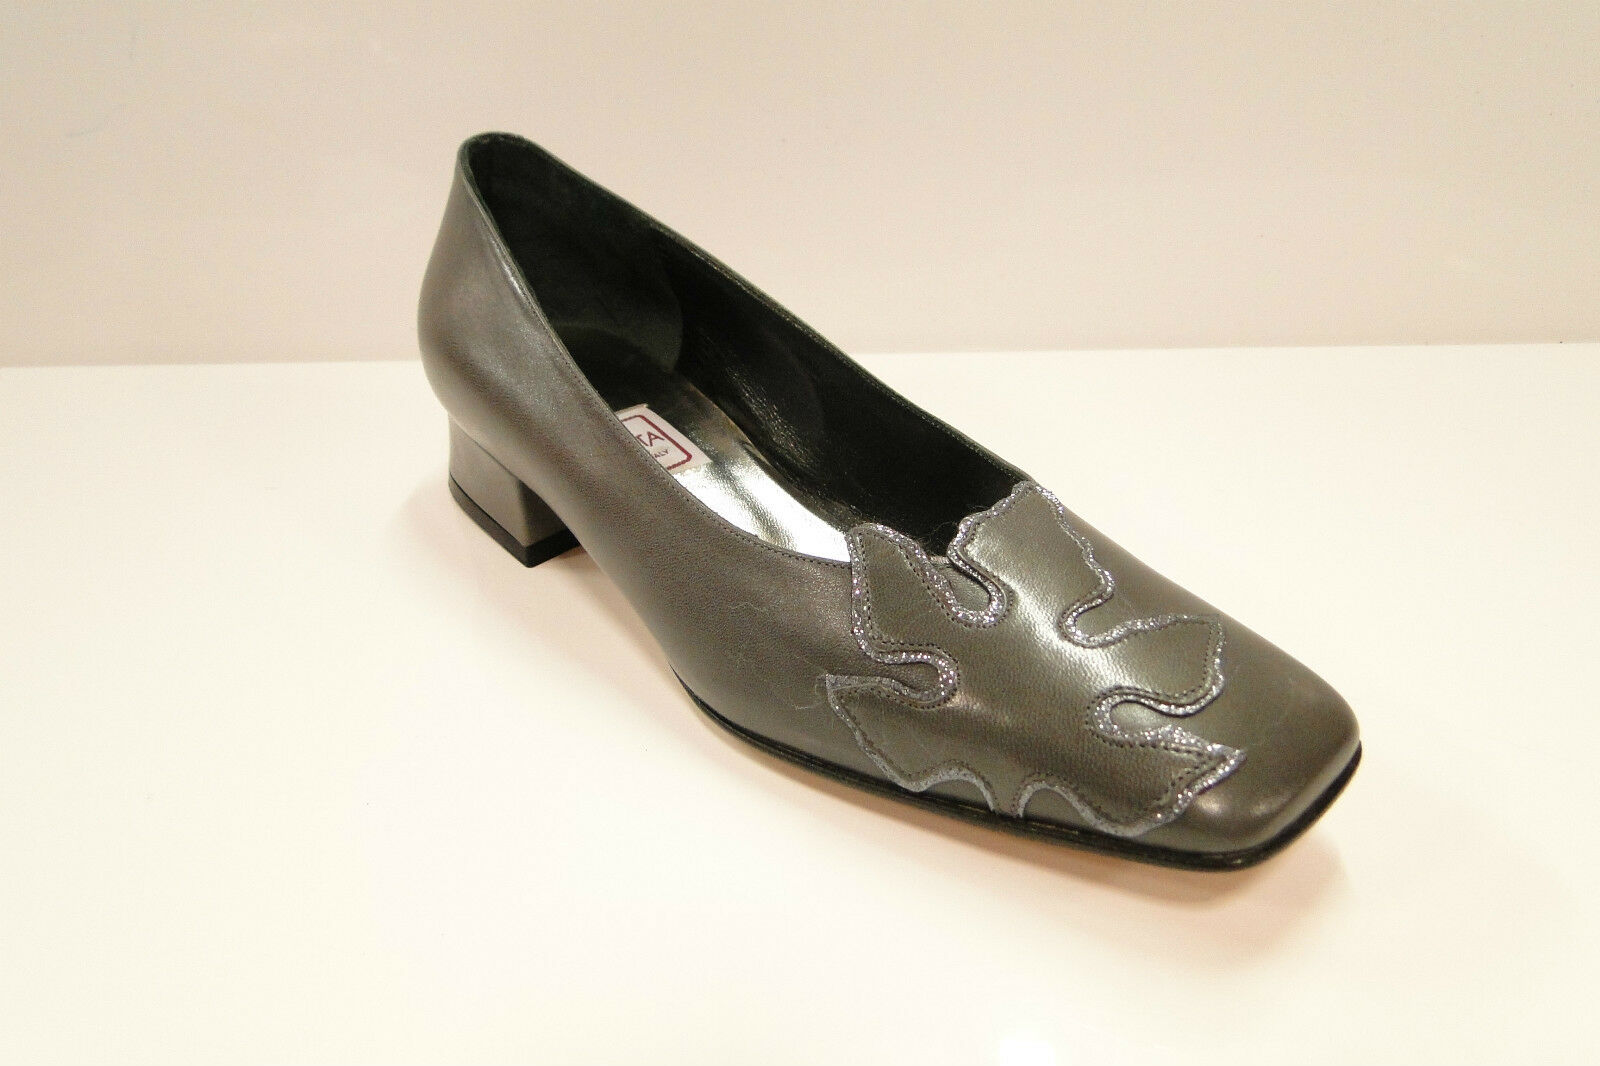 BRAND NEW RENATA (9145) BARBI ITALIAN LADIES COURT chaussures - ITALIAN MADE